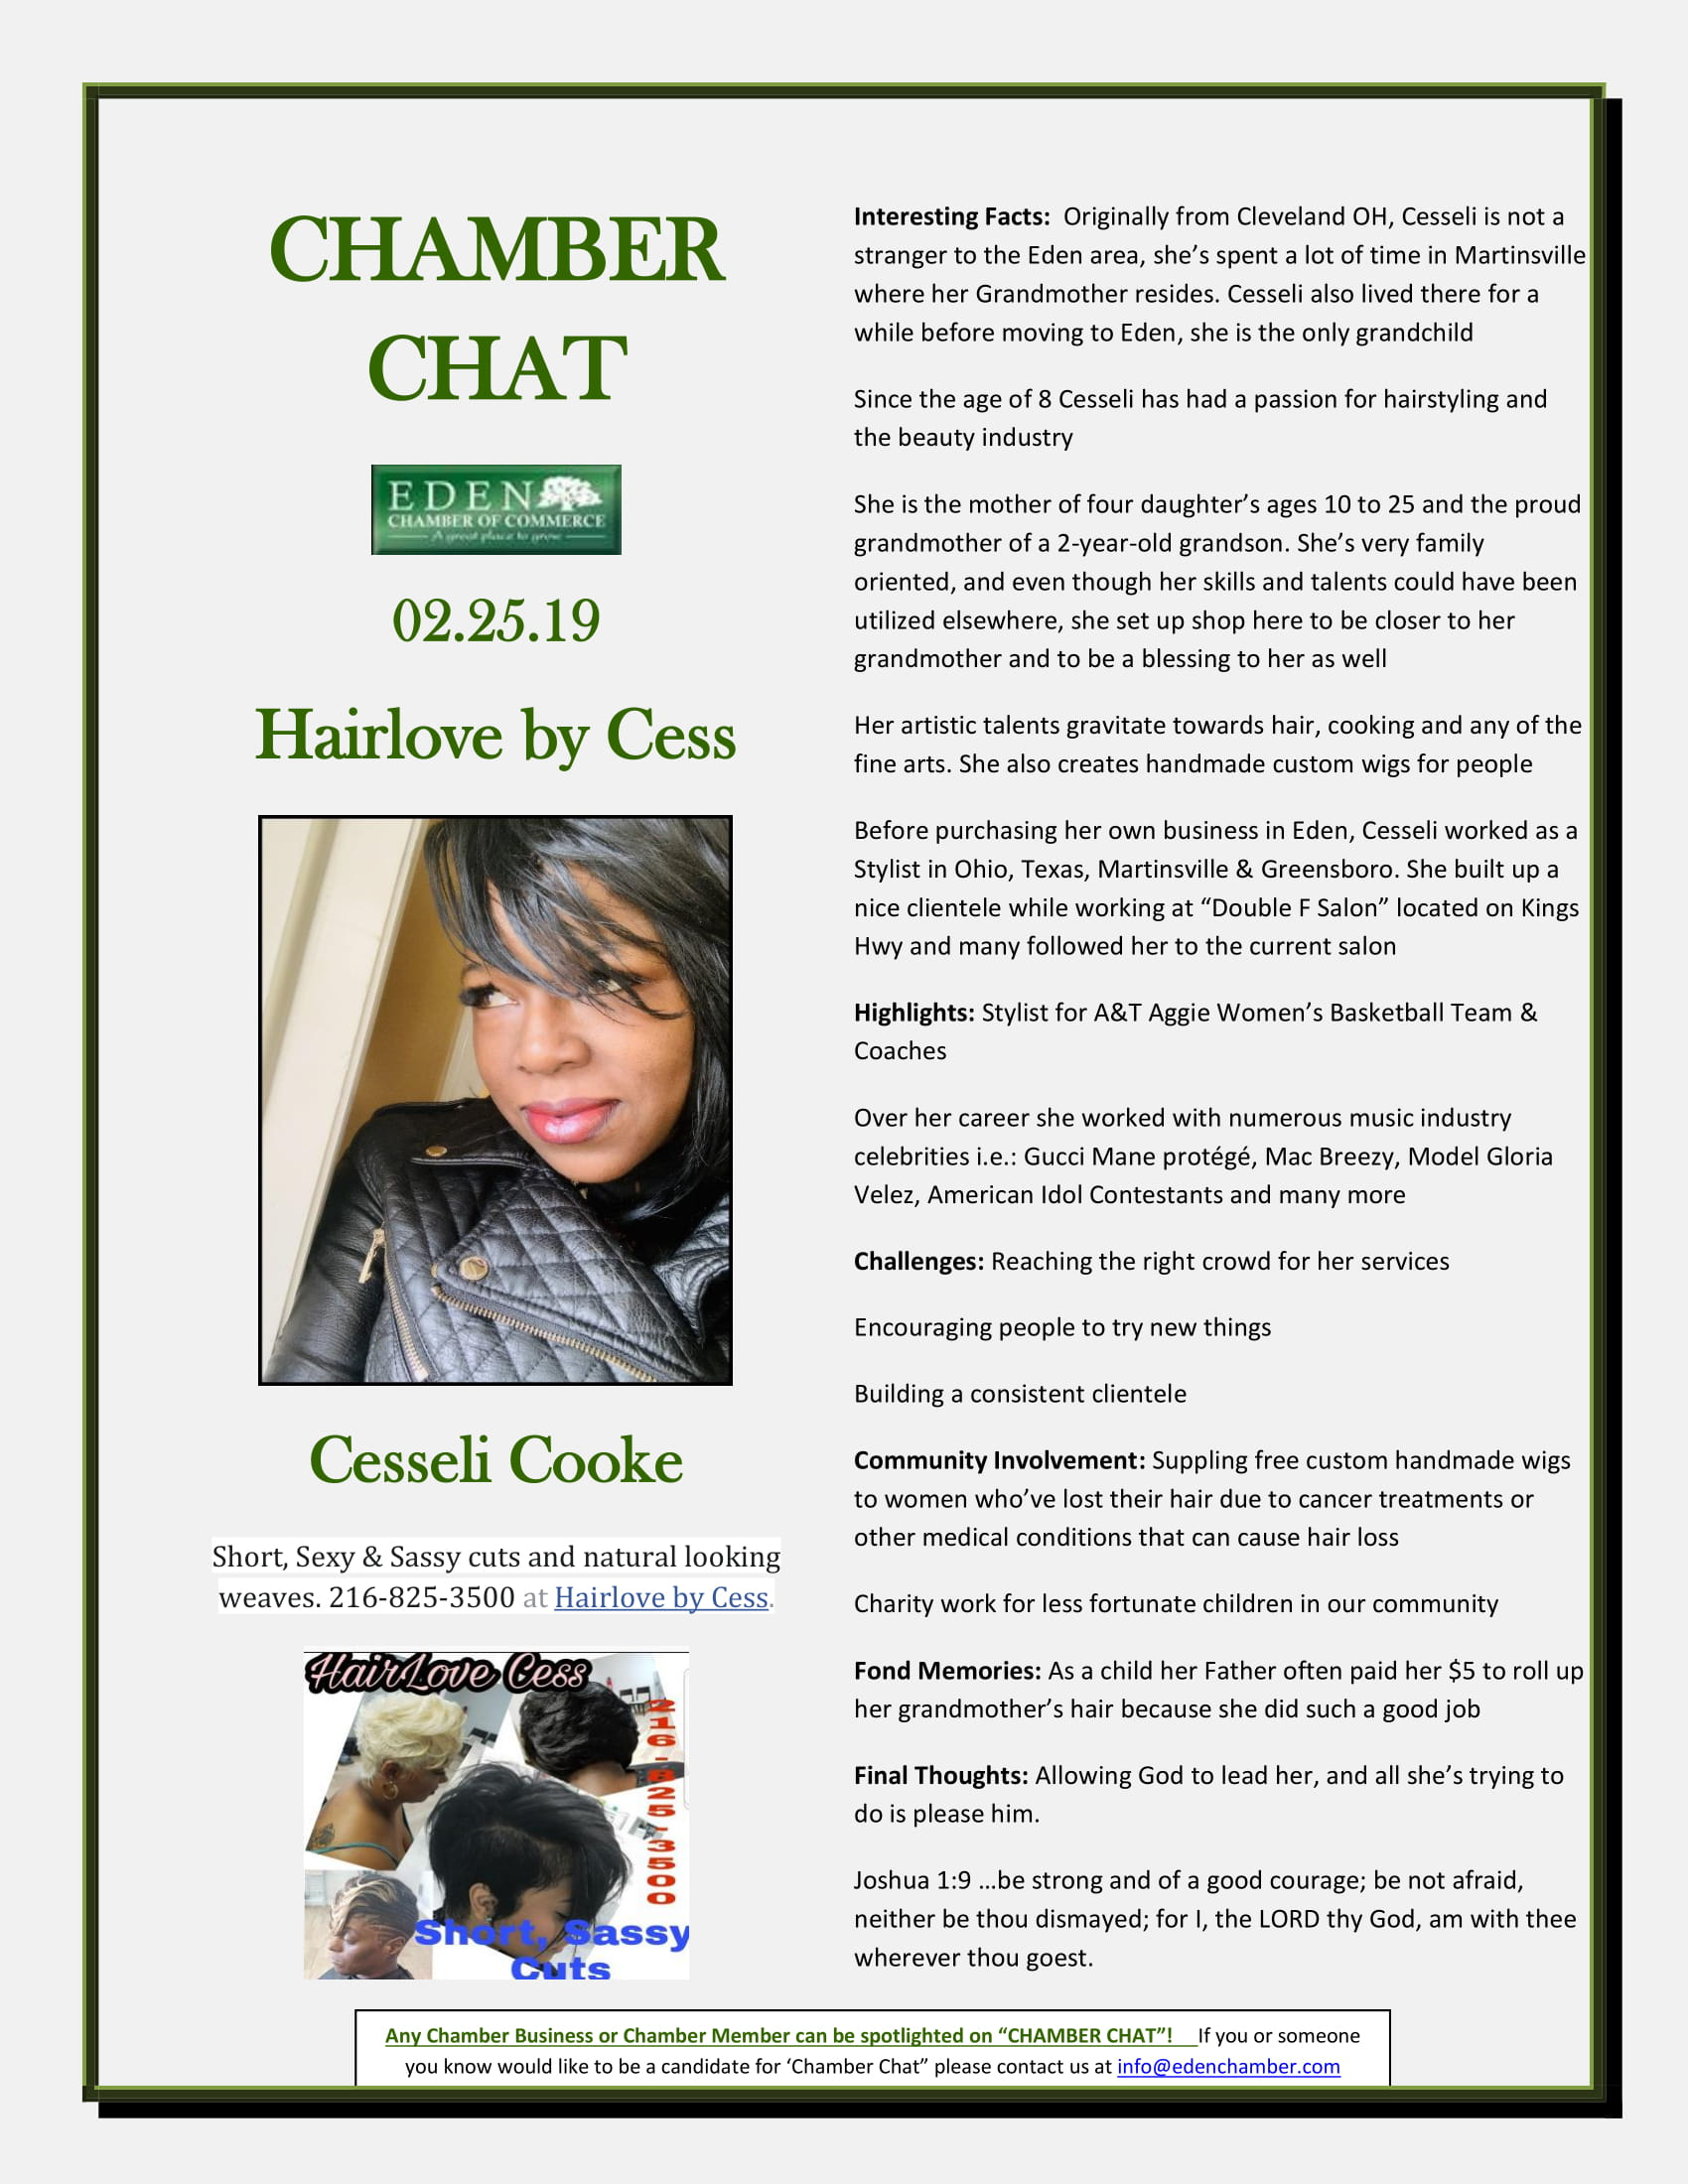 CHAMBER-CHAT-Hairlove-by-Cess-02.22.19--1